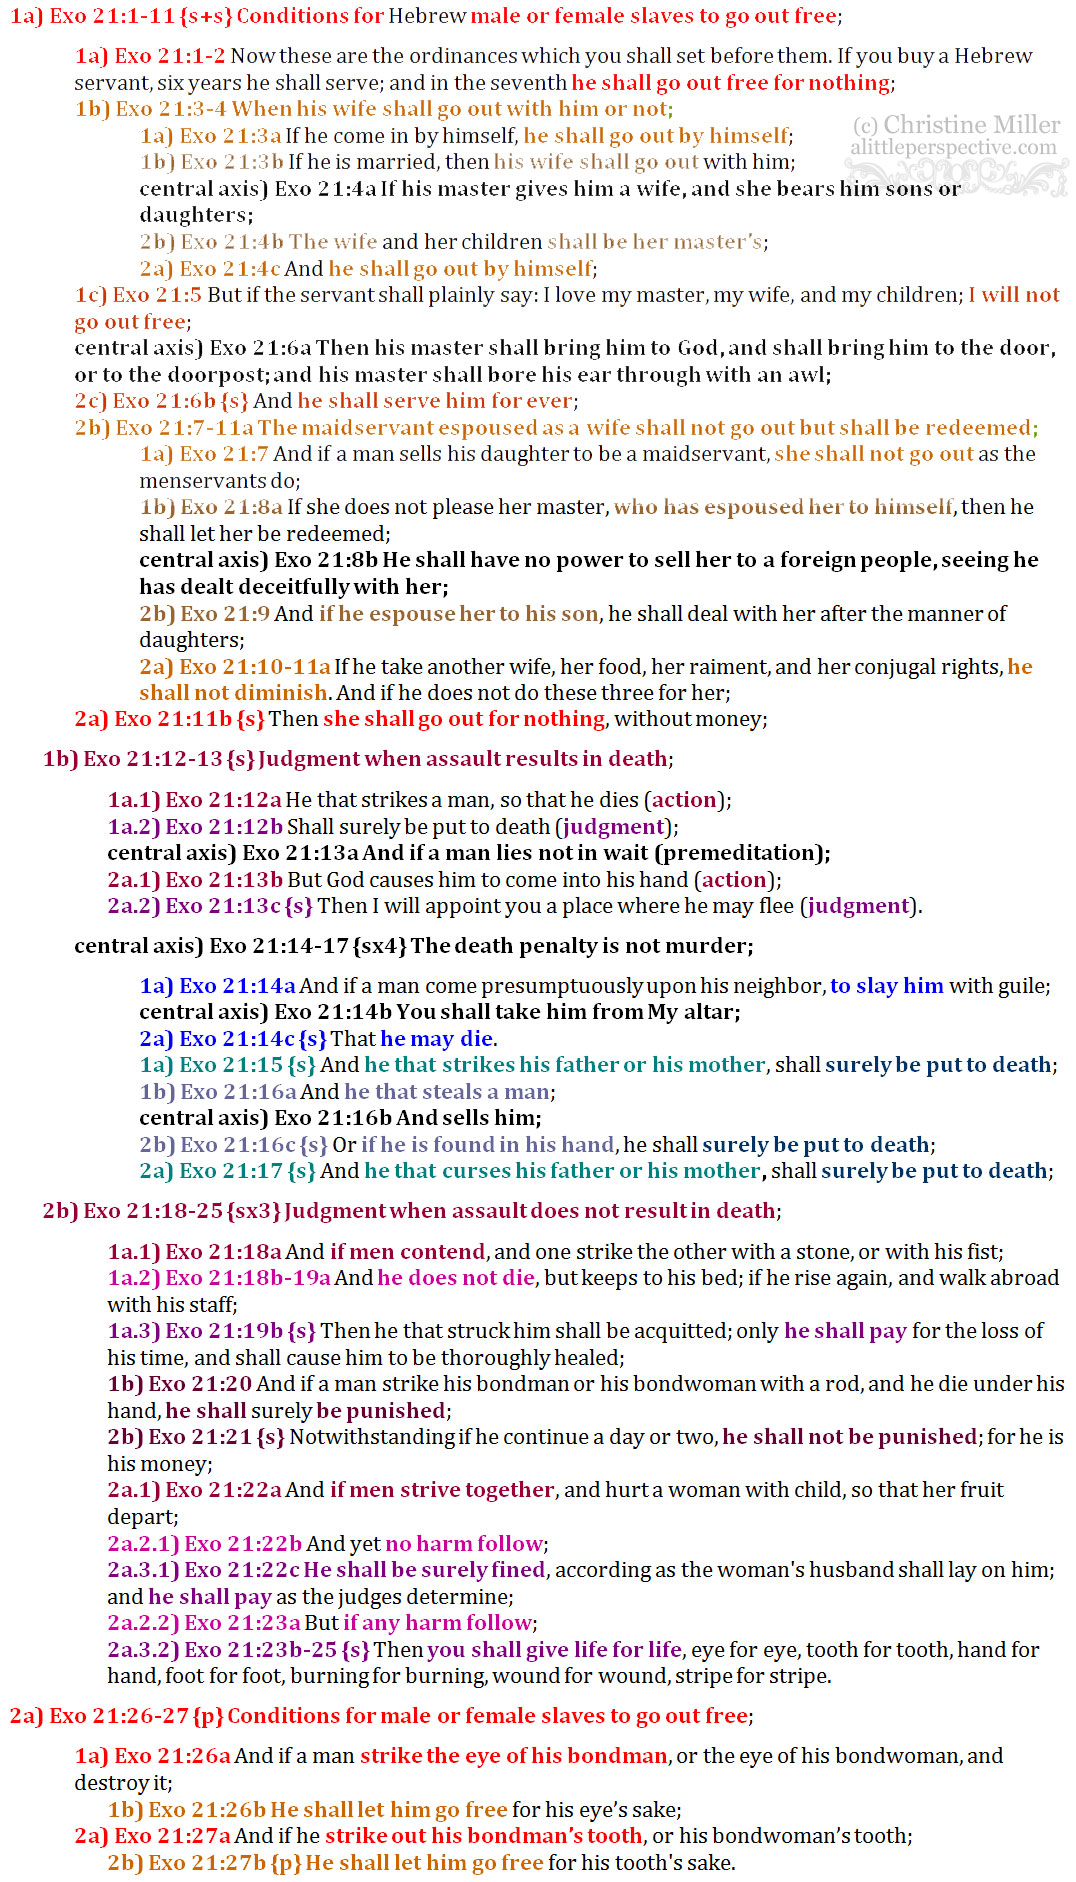 Exo 21:1-27 chiasm | christine's bible study at alittleperspective.com